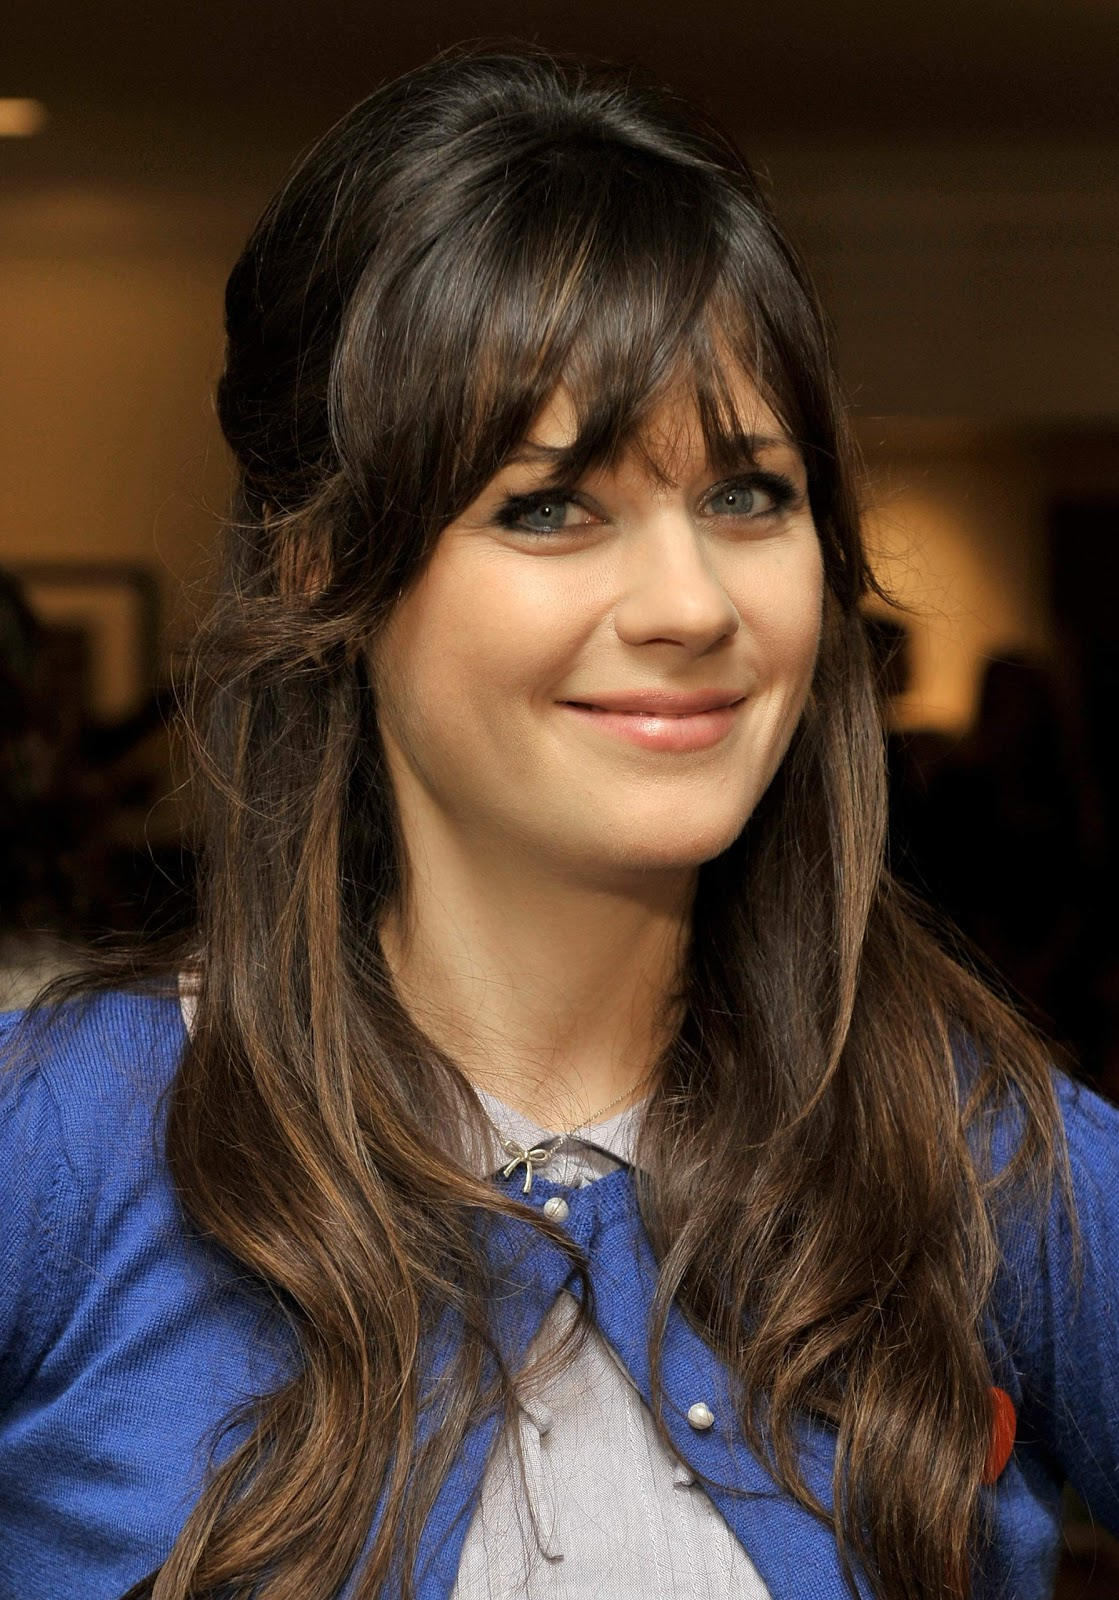 <b>HOLLYWOOD ALL STARS</b>: <b>Zooey</b> Deschanel Profile, Images and Bio in 2012